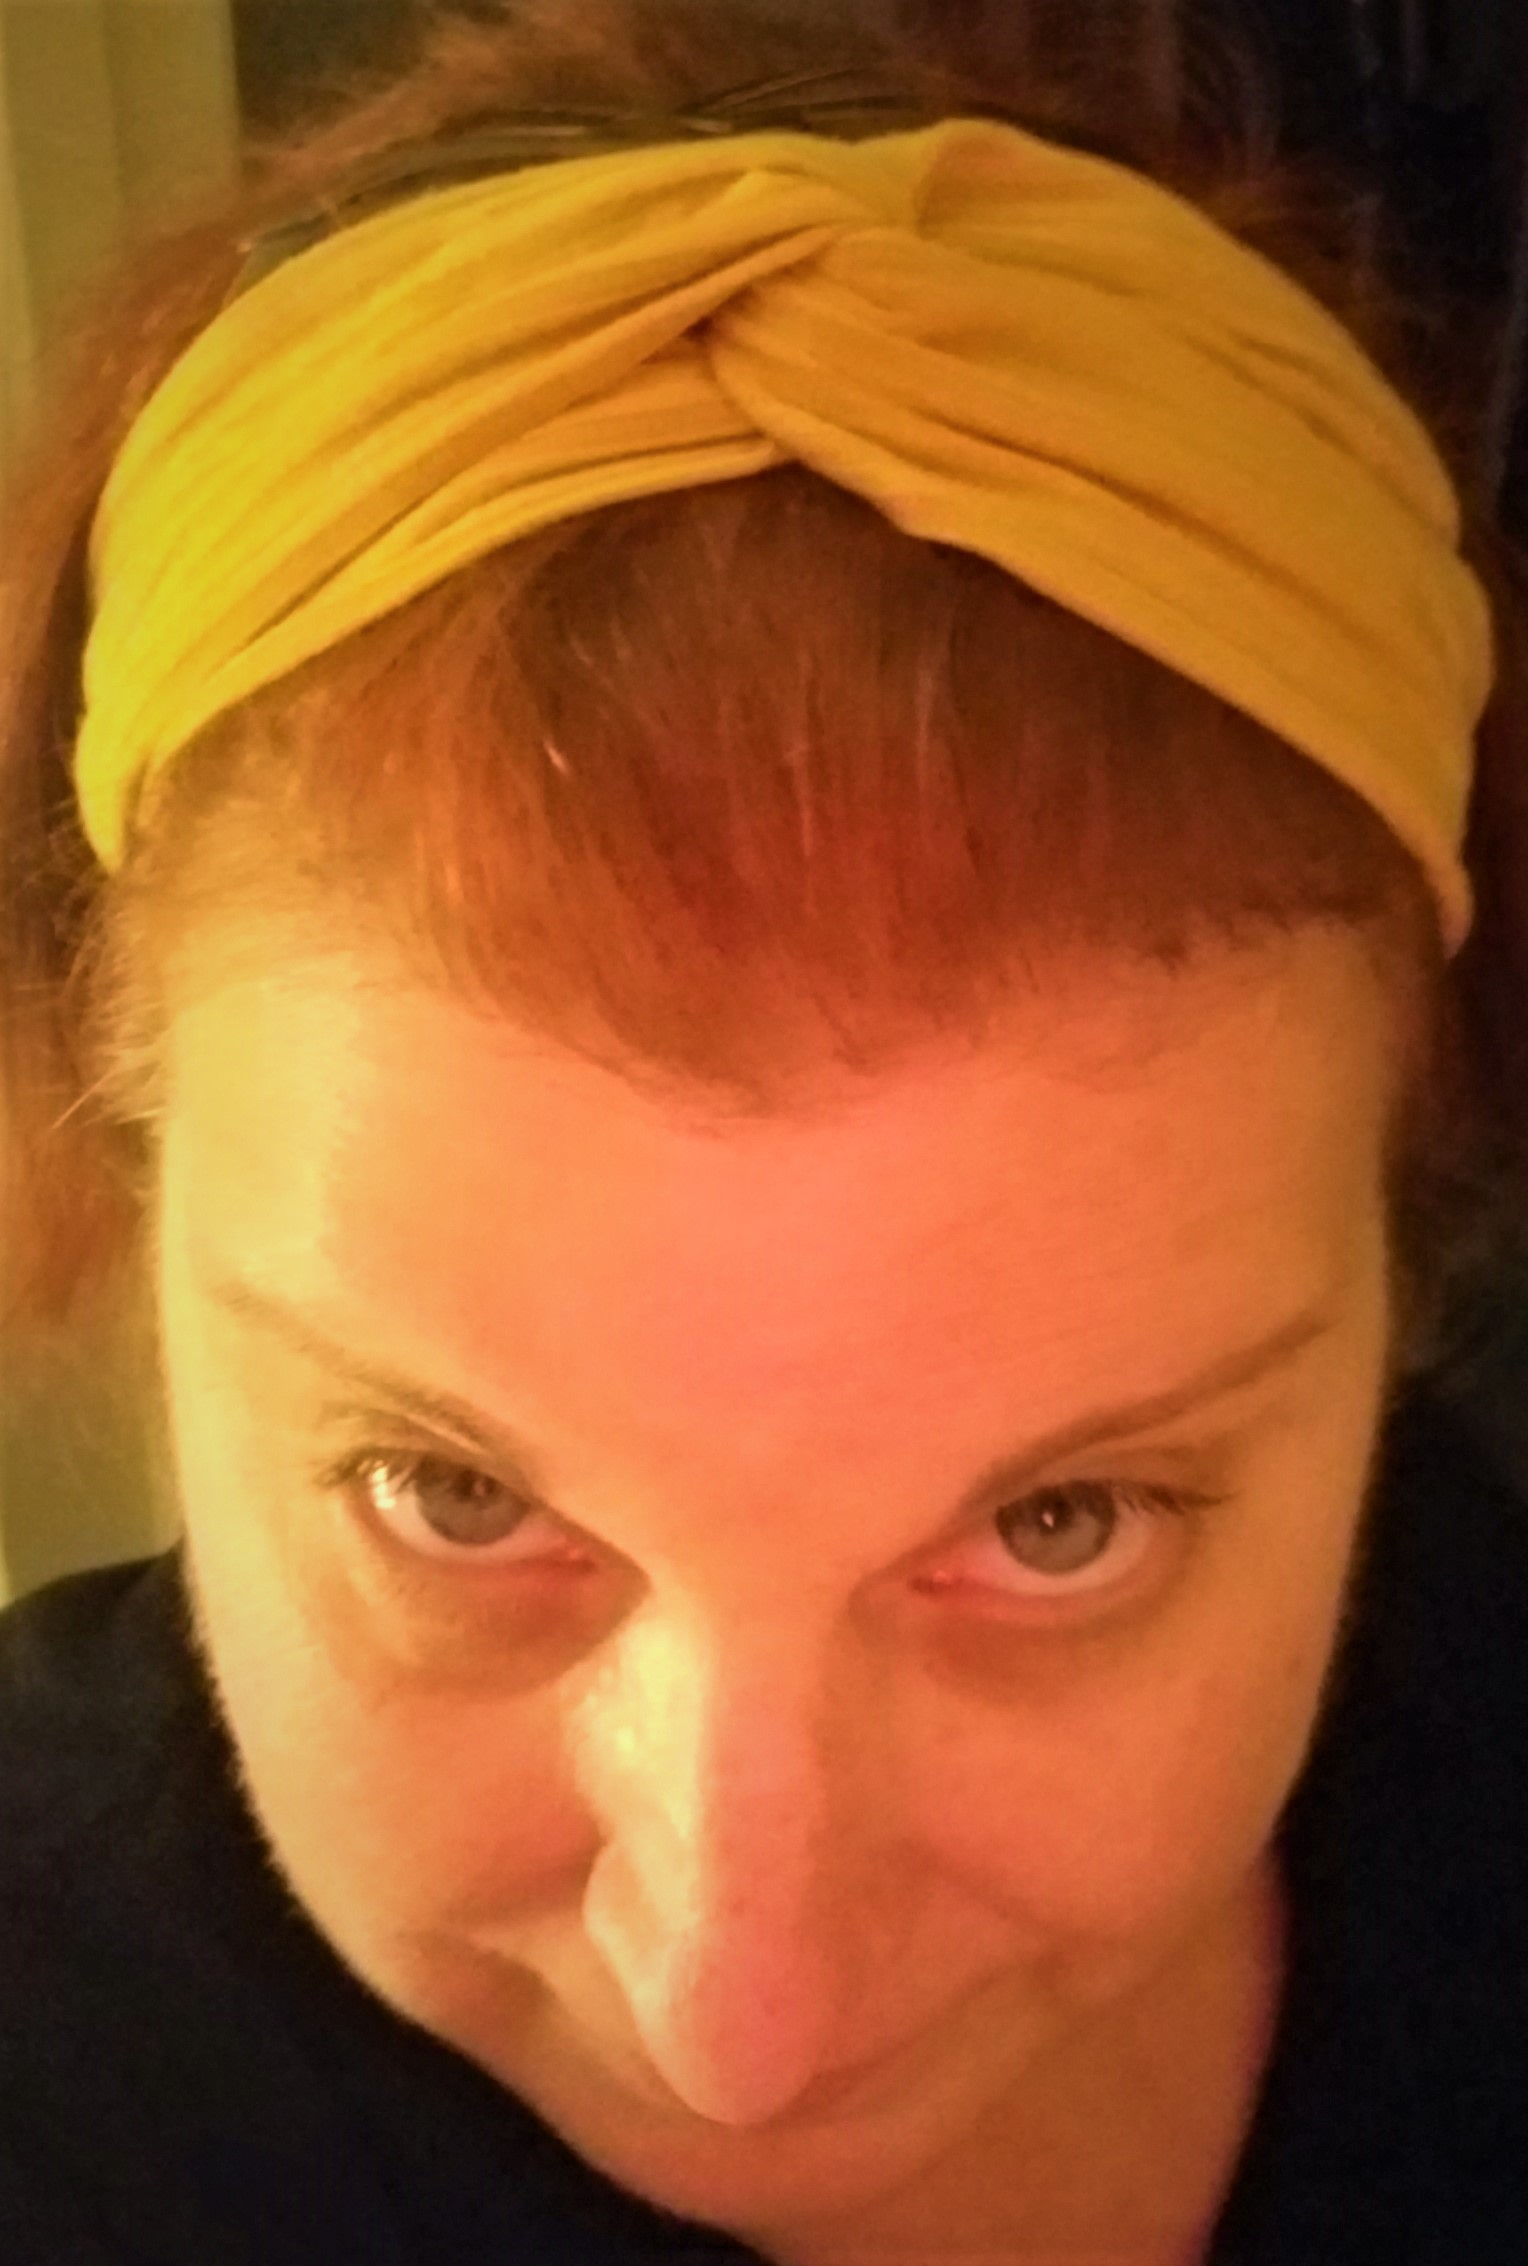 8 Pack of Woman's Headbands